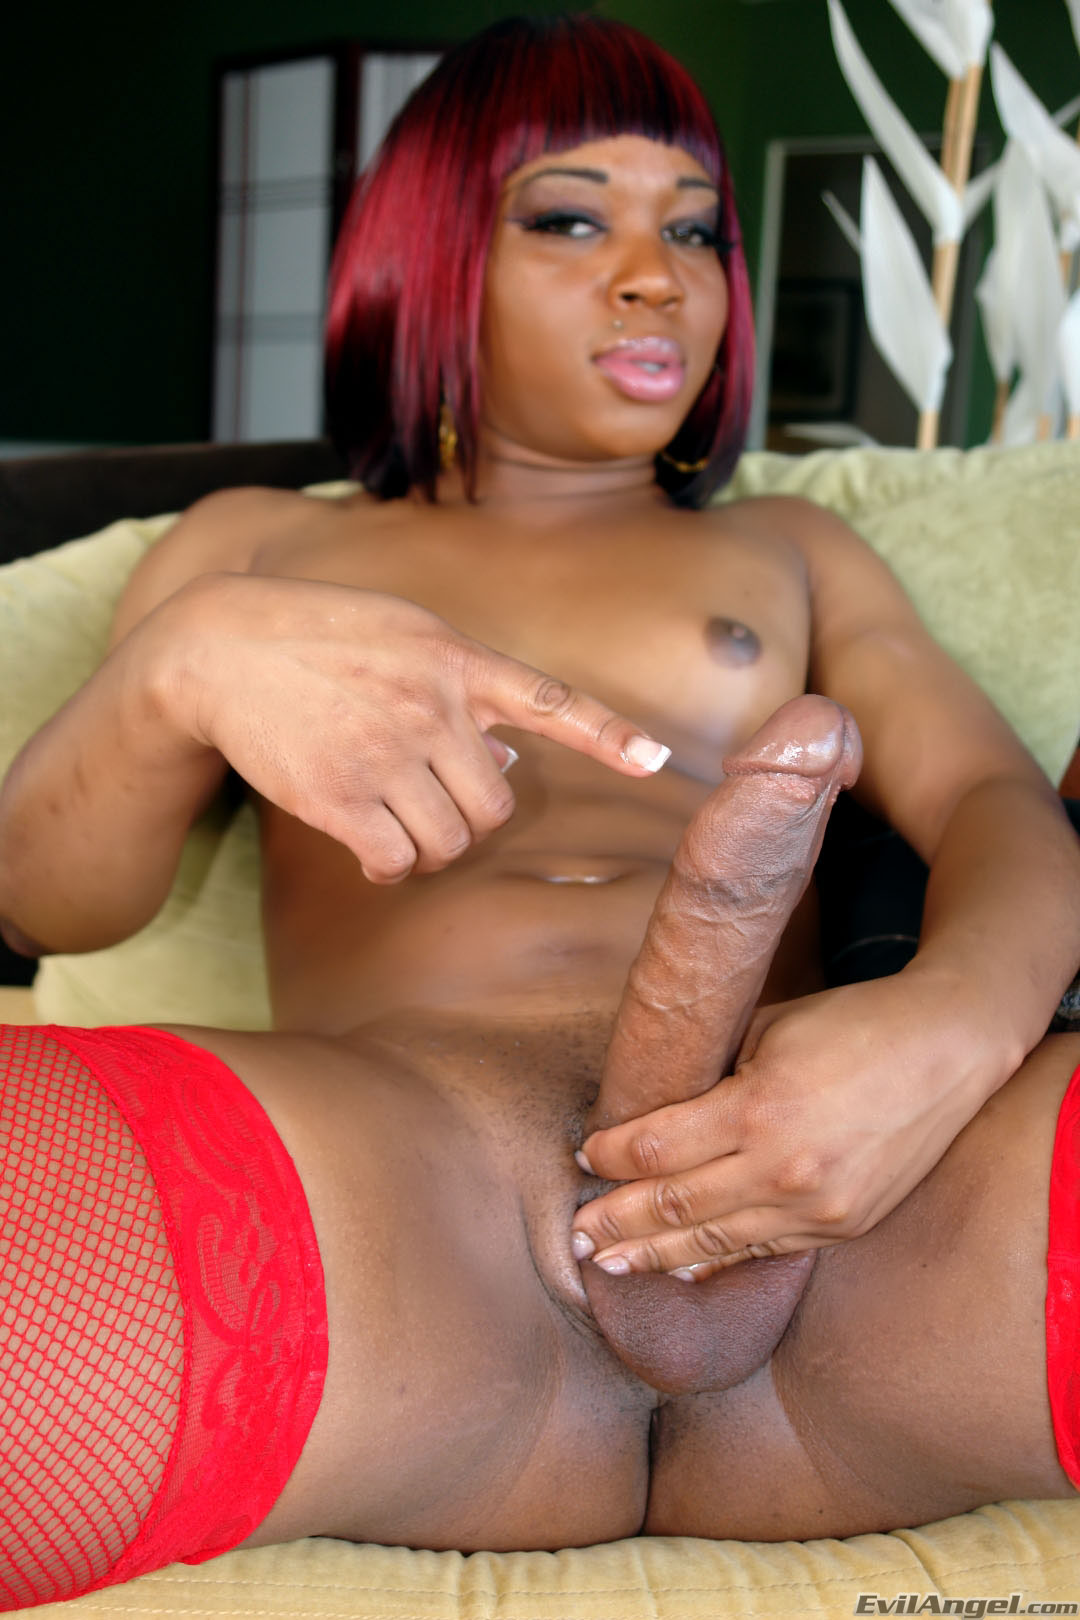 gay big cock tranny - Muscular Tranny In Stockings Shows Big Cock